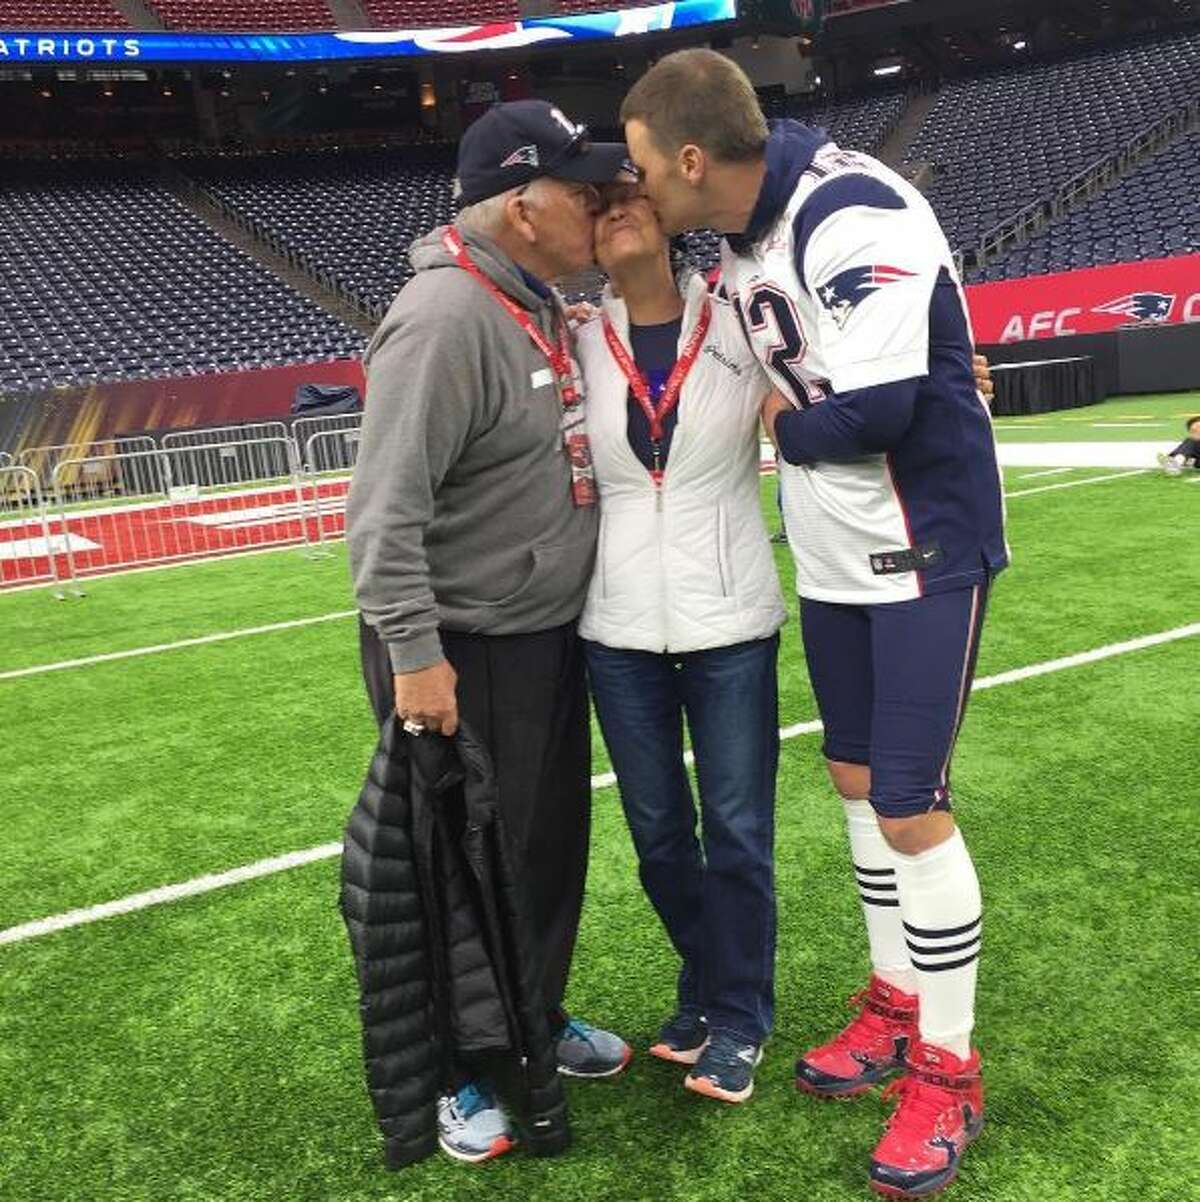 Tom Brady with his parents before Super Bowl LI in Houston.